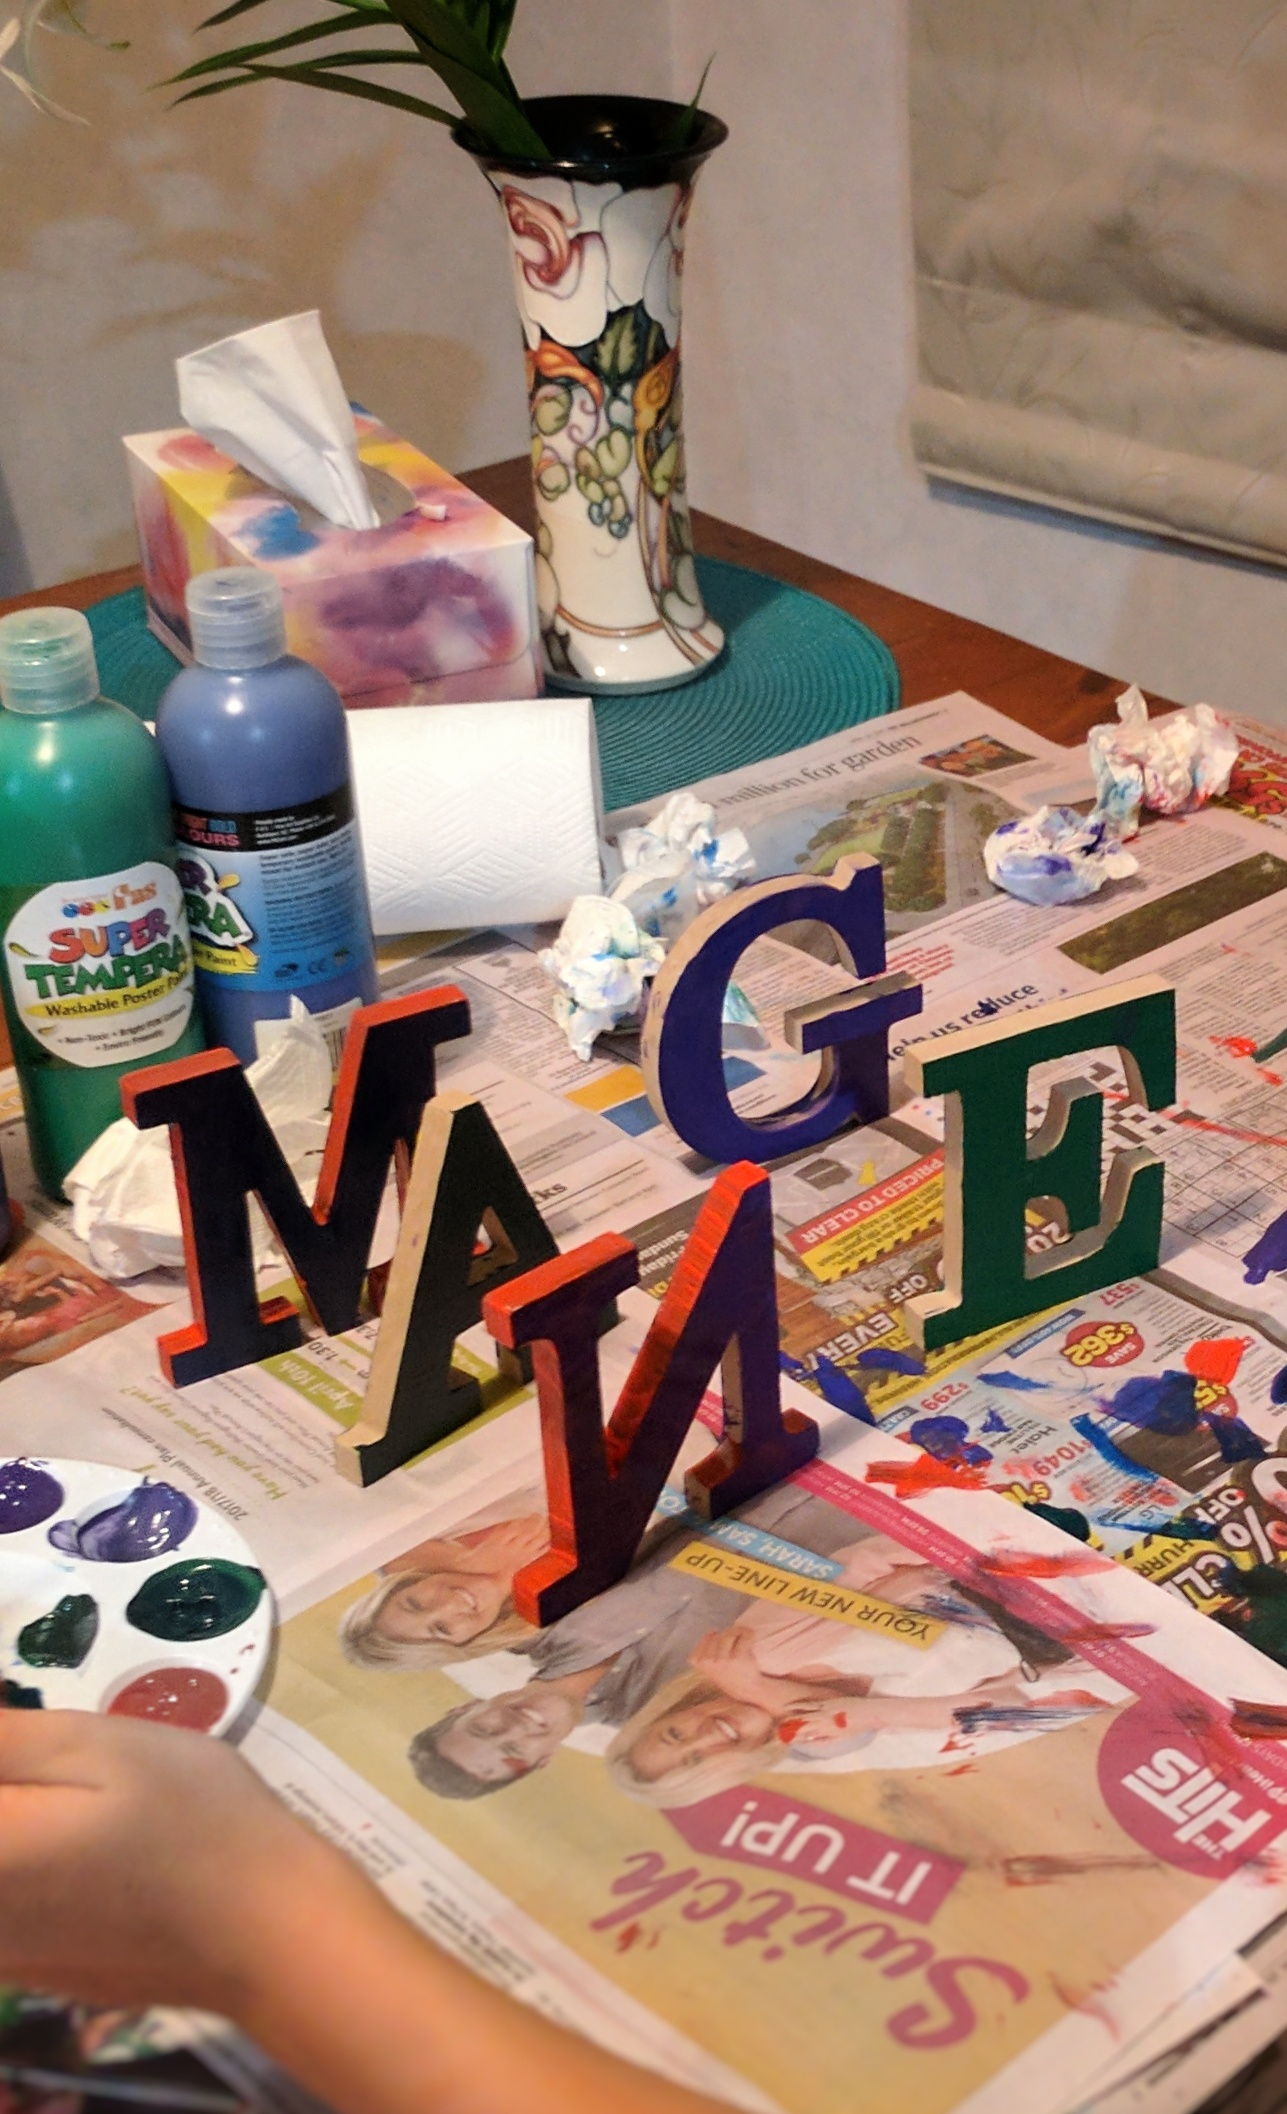 M E G A N letters to be painted